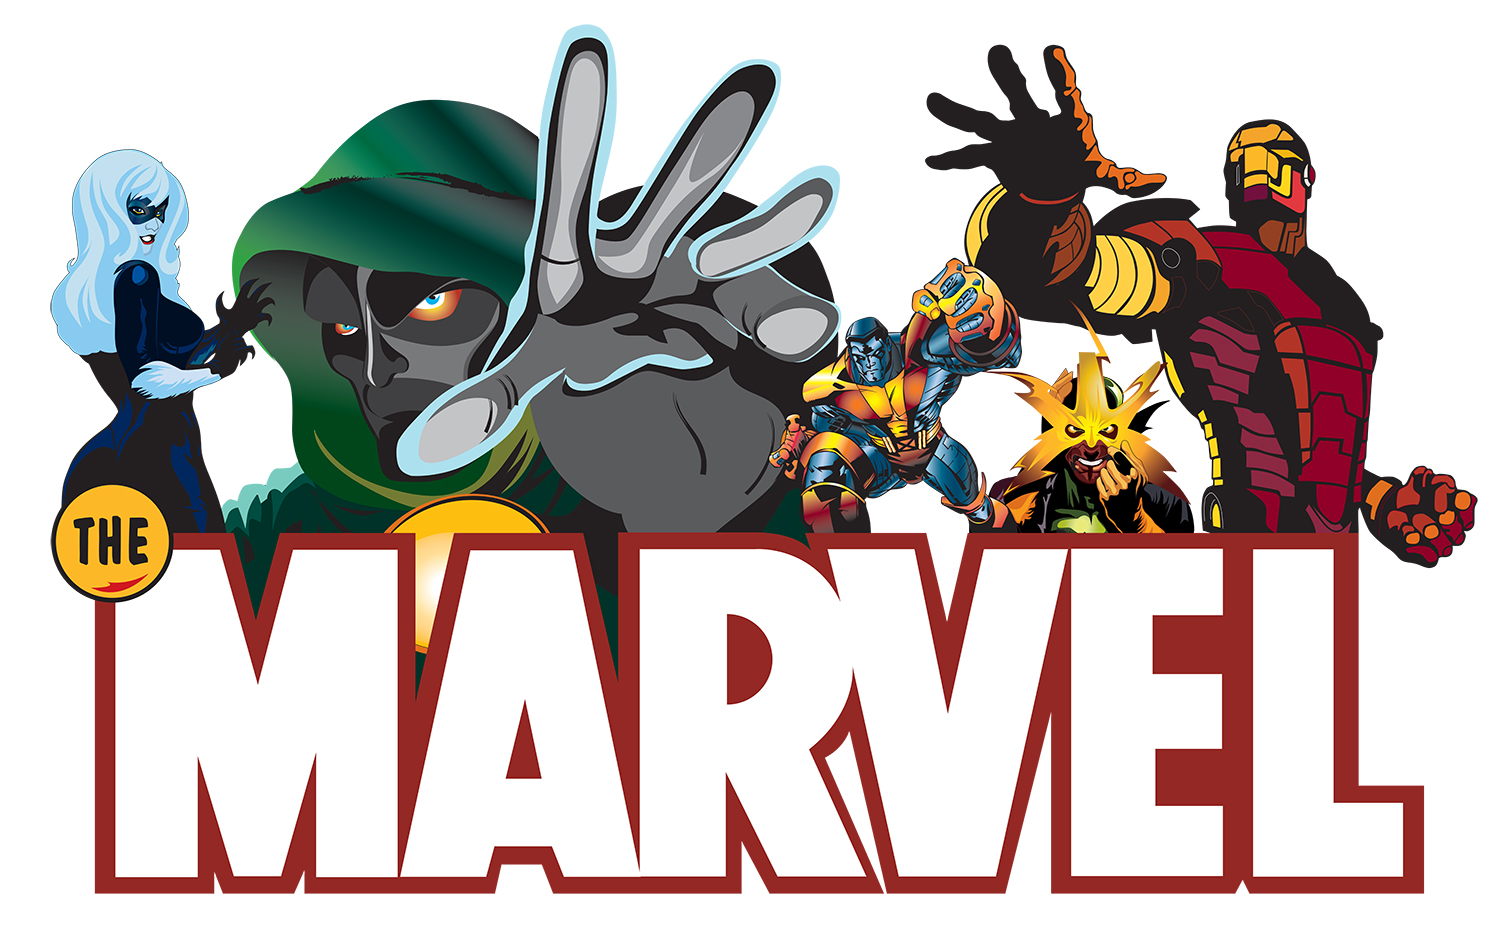 Marvel-wide-banner.jpg